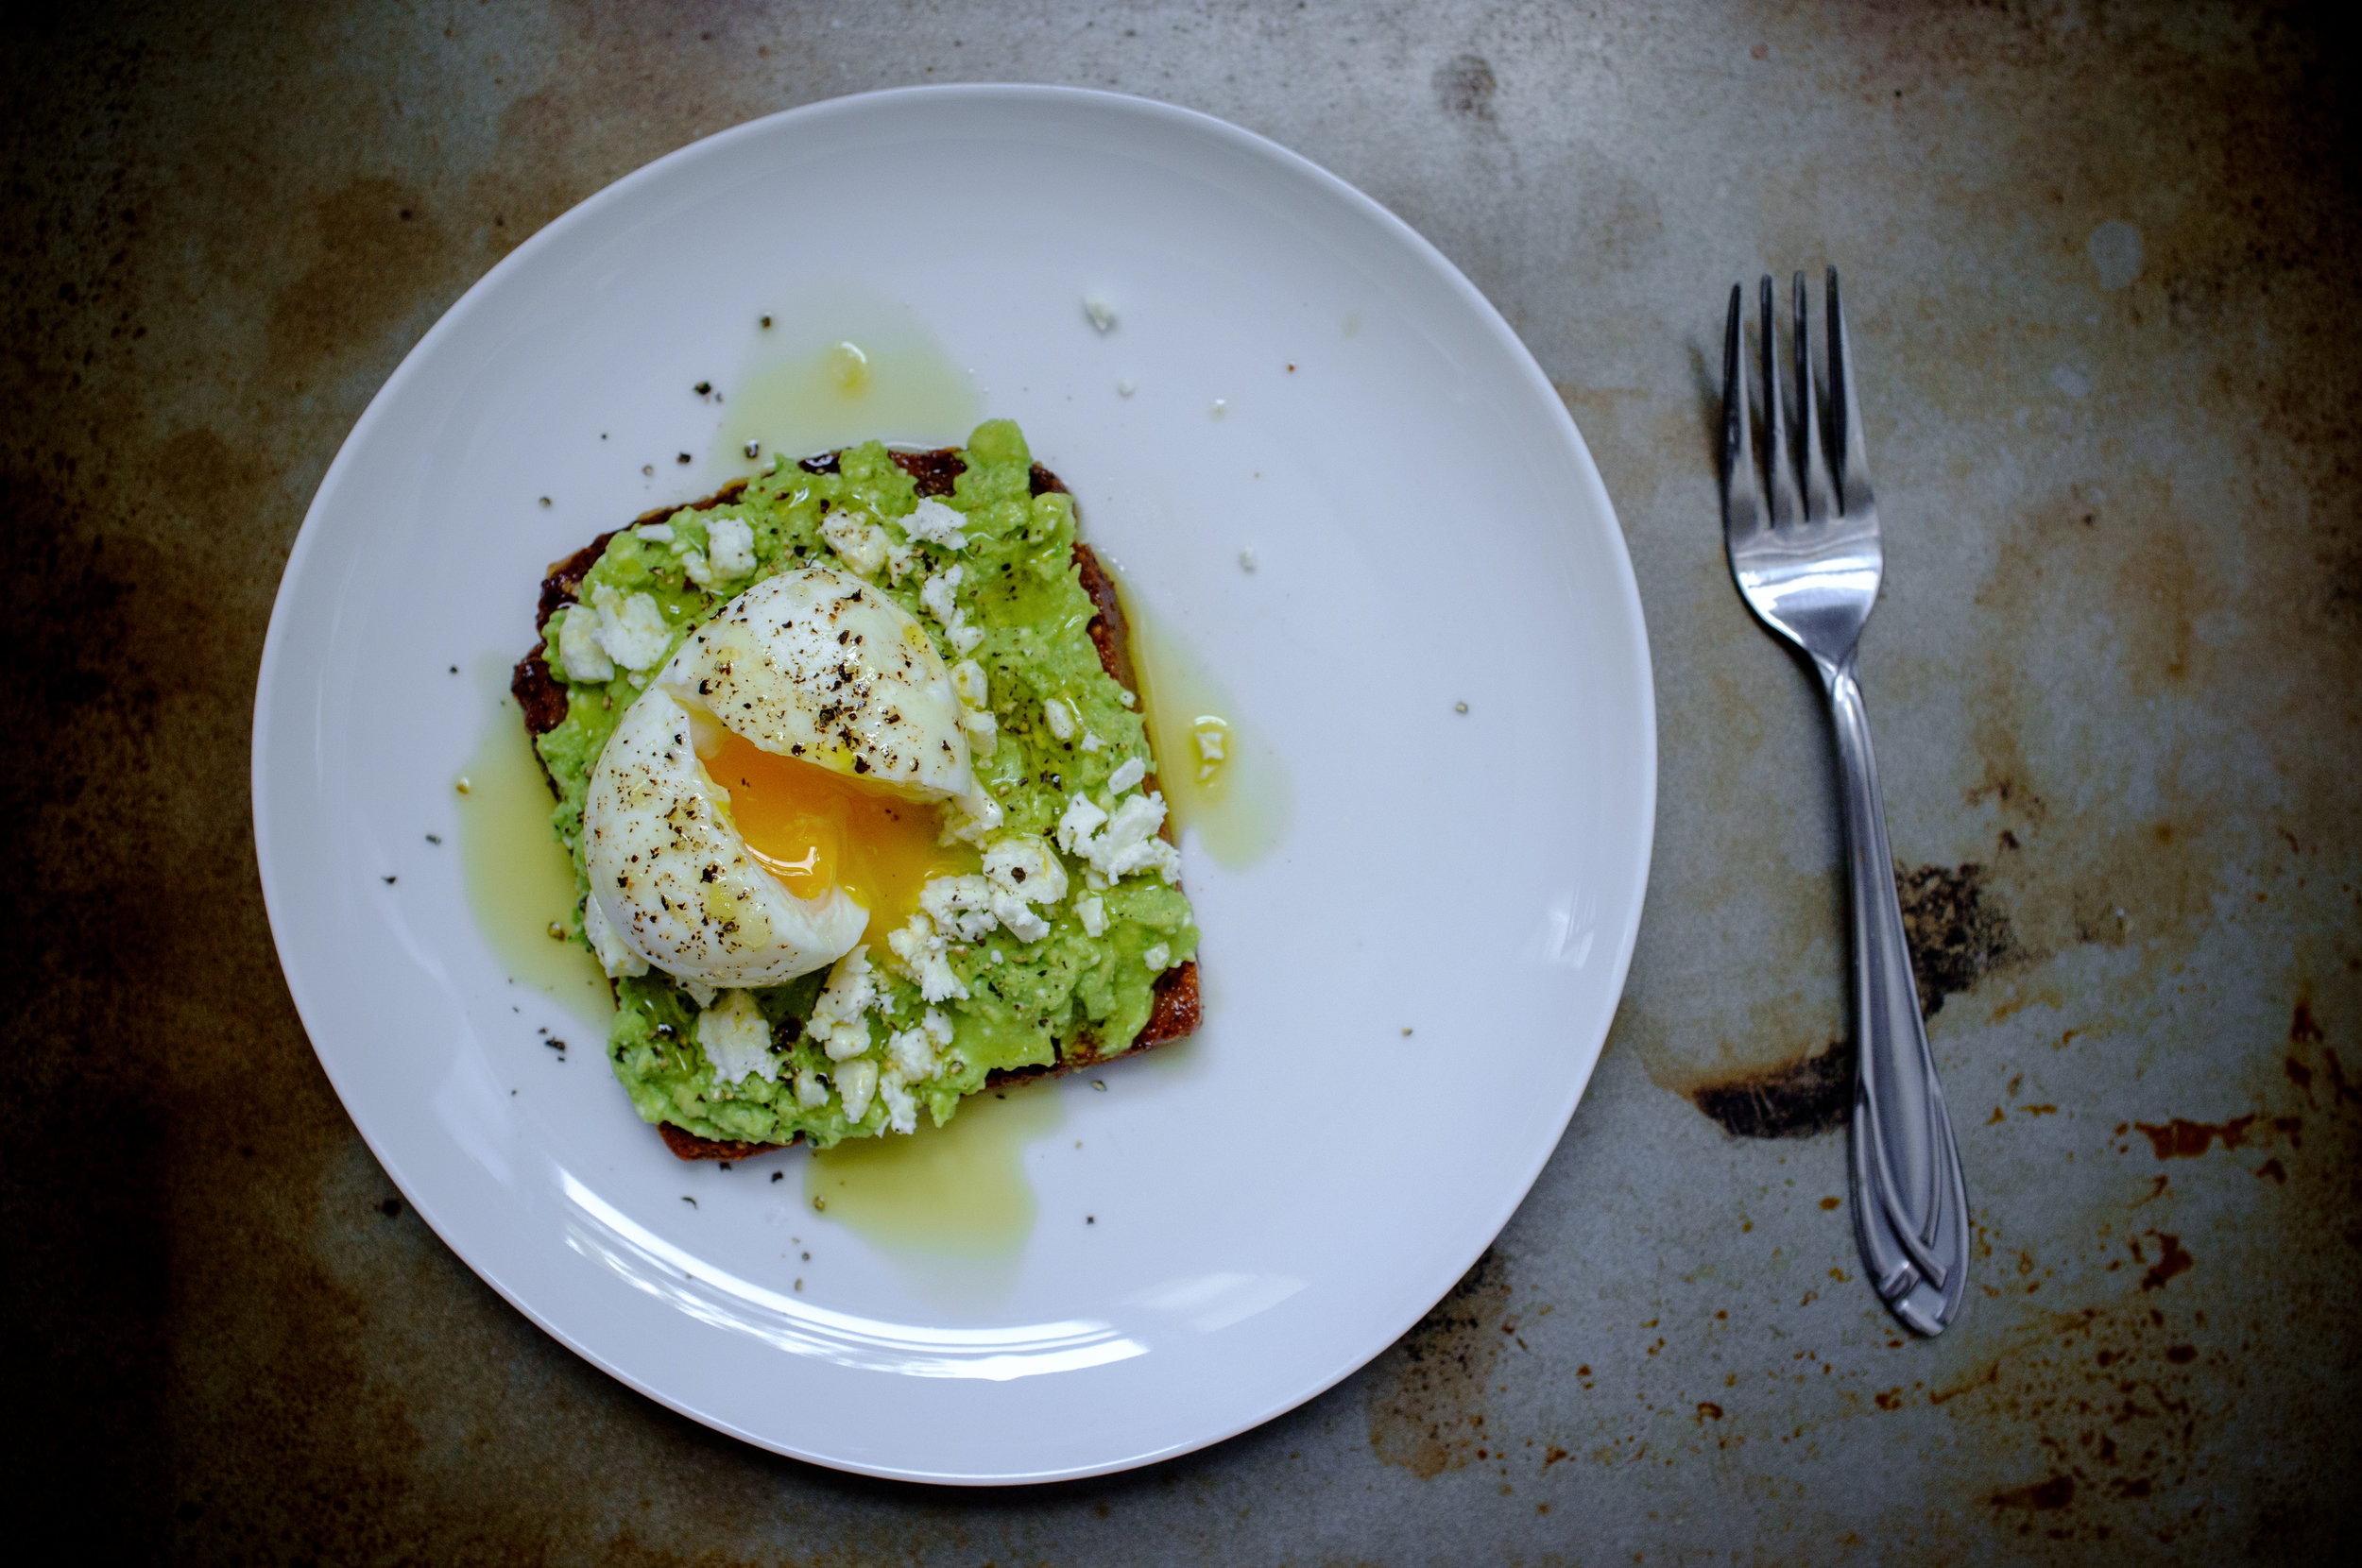 Avocado toast with feta cheese and a soft boiled egg